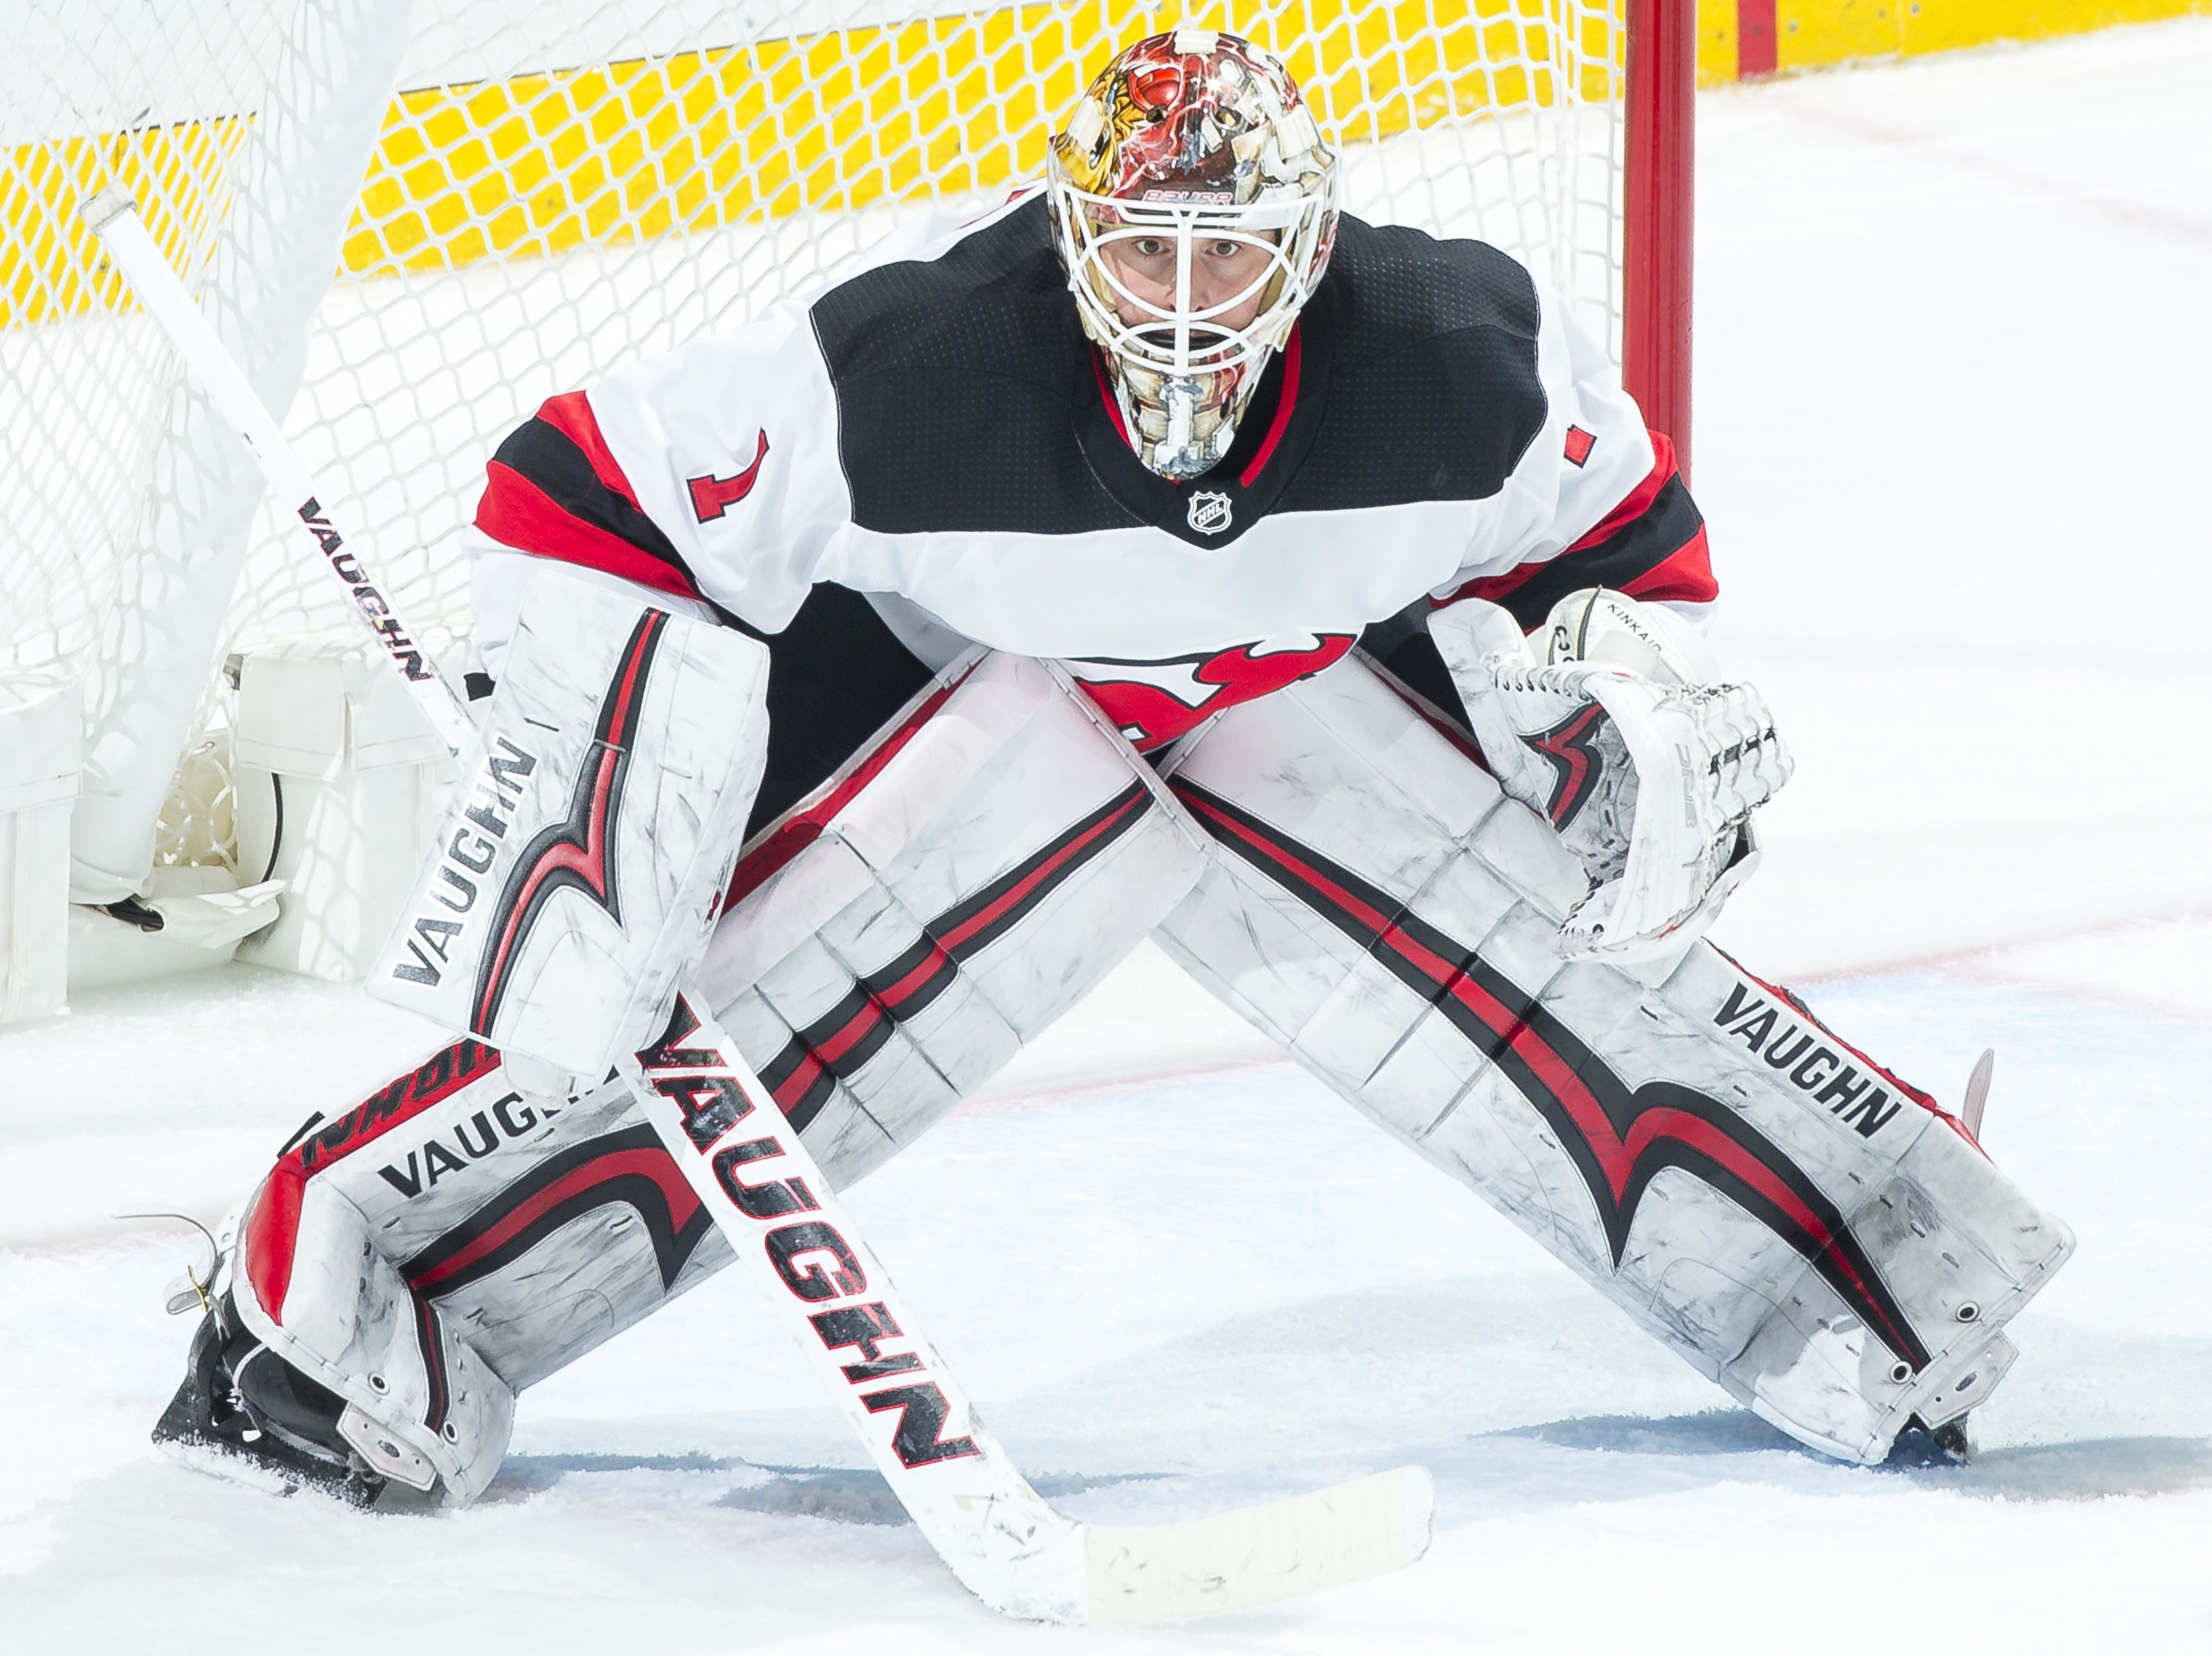 brand new 2d493 aec3d New Jersey Devils: Keith Kinkaid's Incredible Resurgence